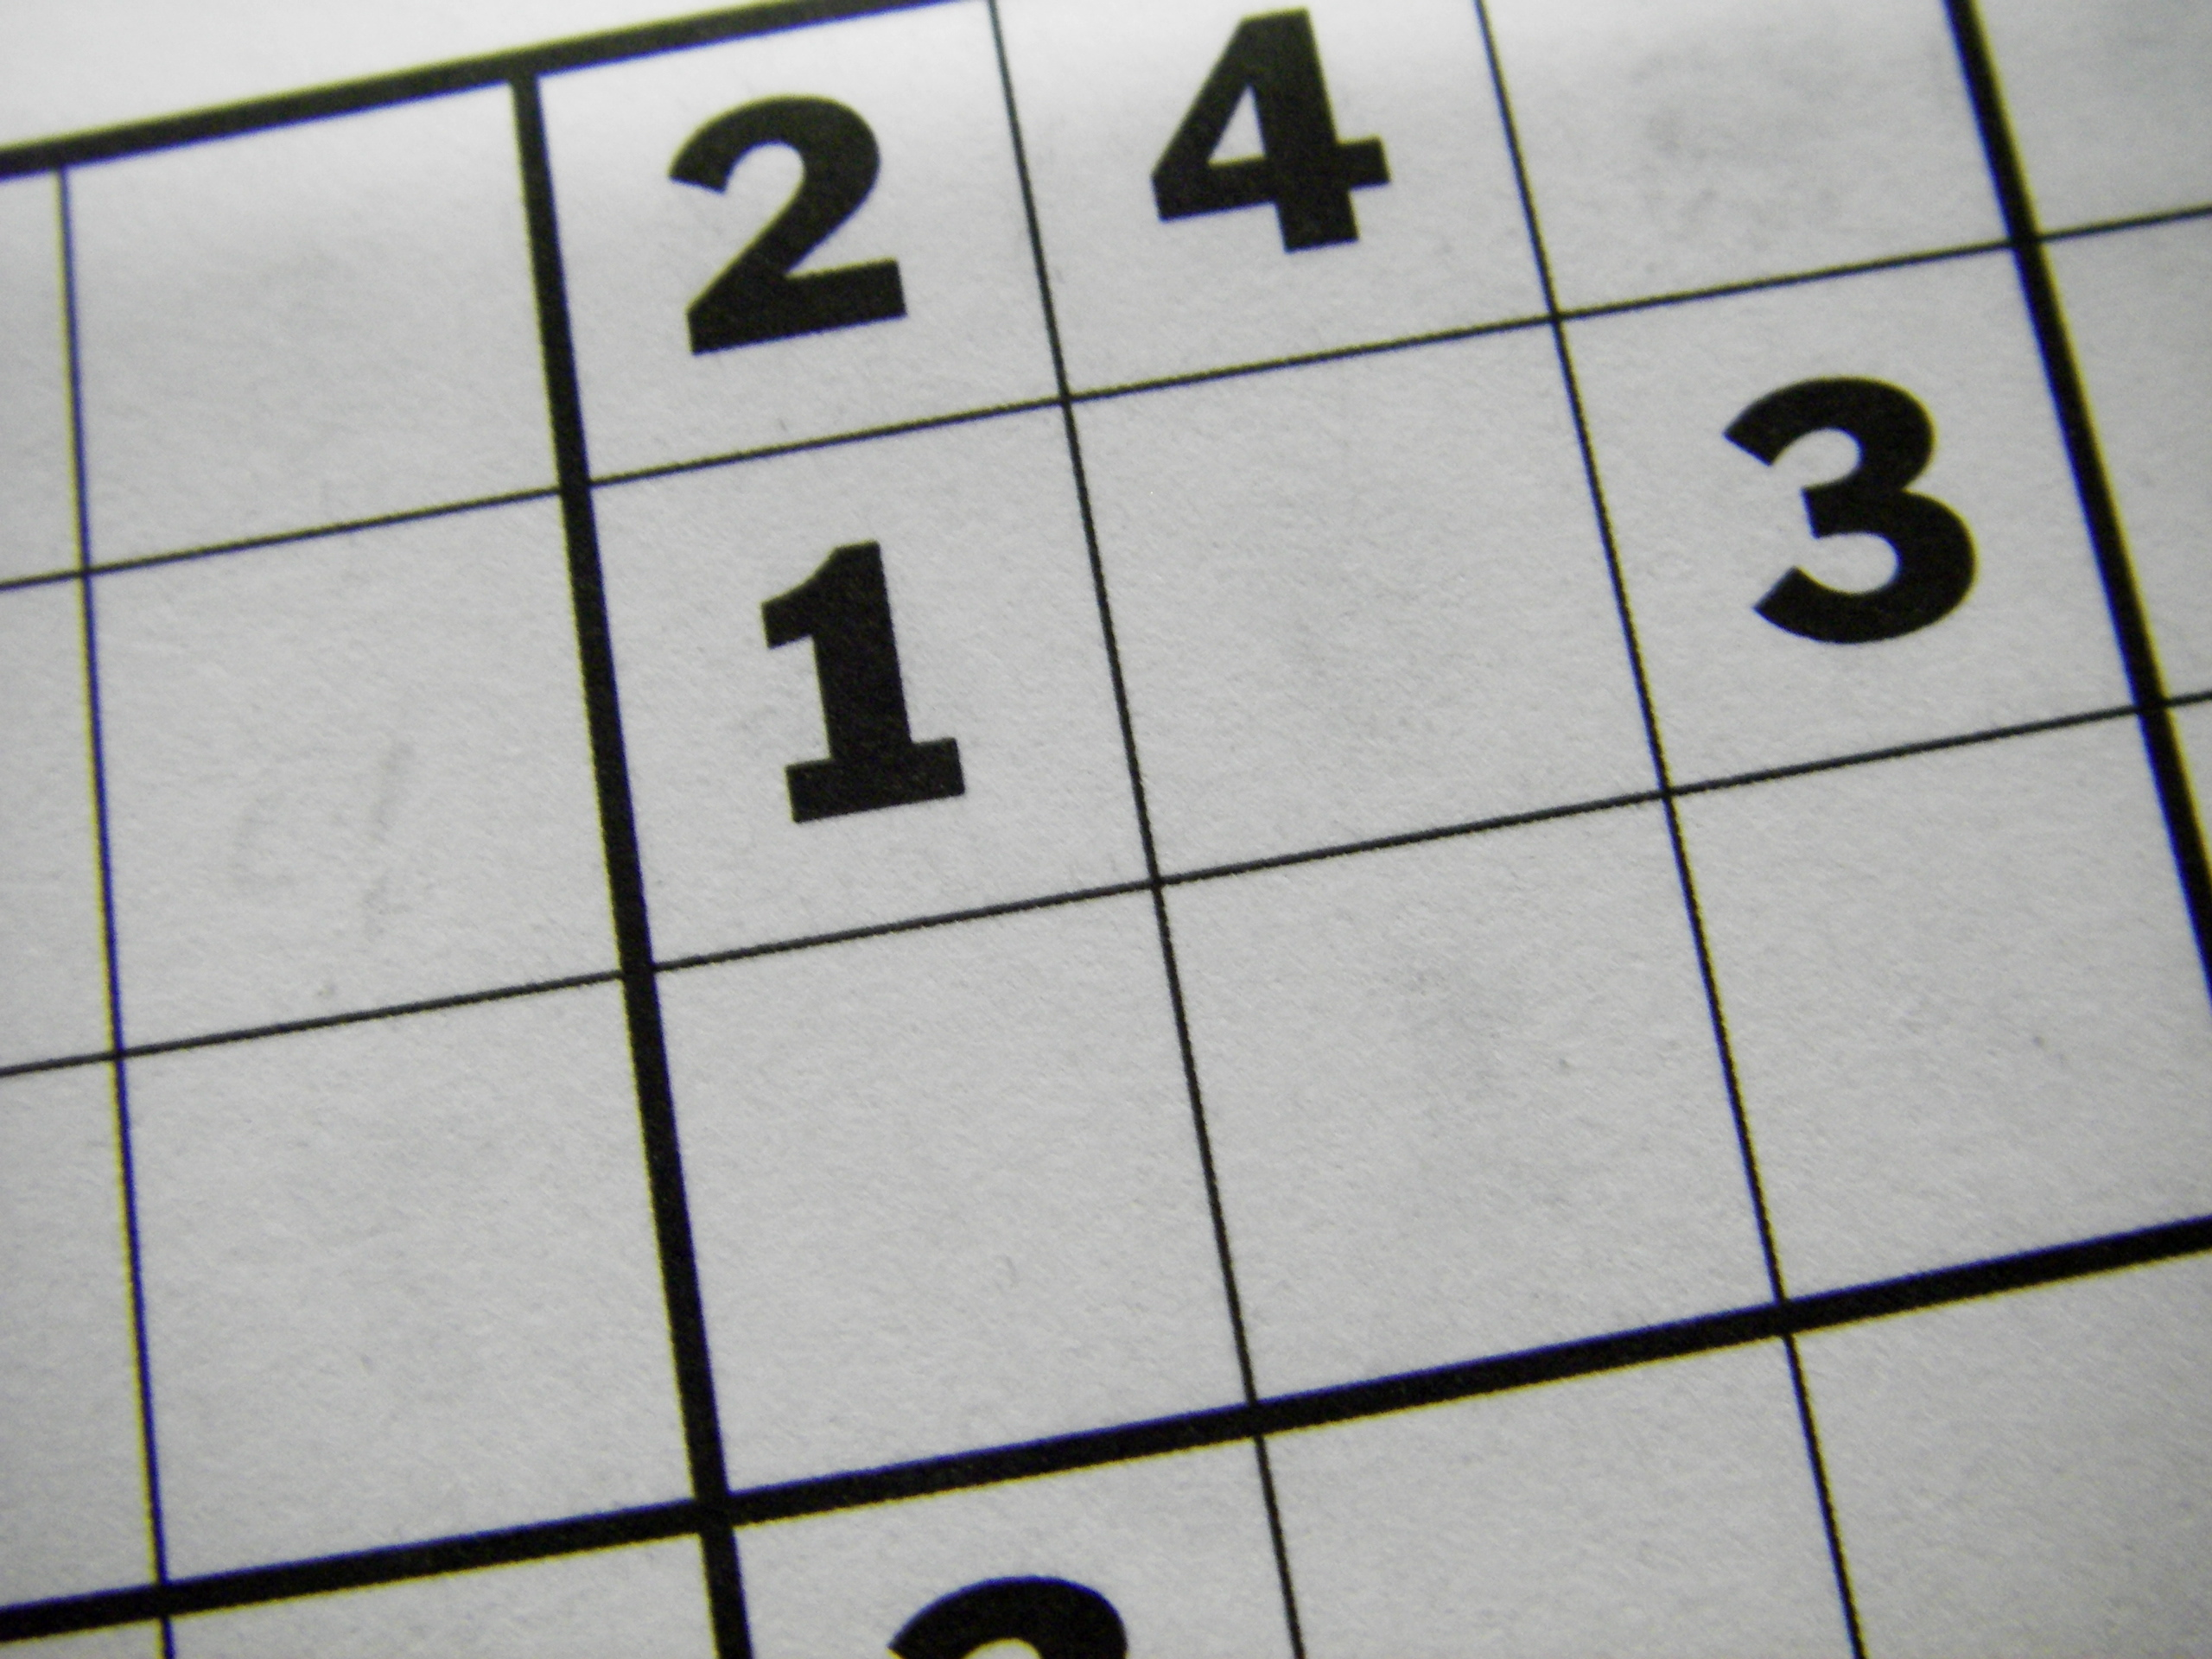 image about Printable Sudoku 4 Per Page called Demanding Printable Sudoku Puzzles 6 For every Site E-book 4 No cost